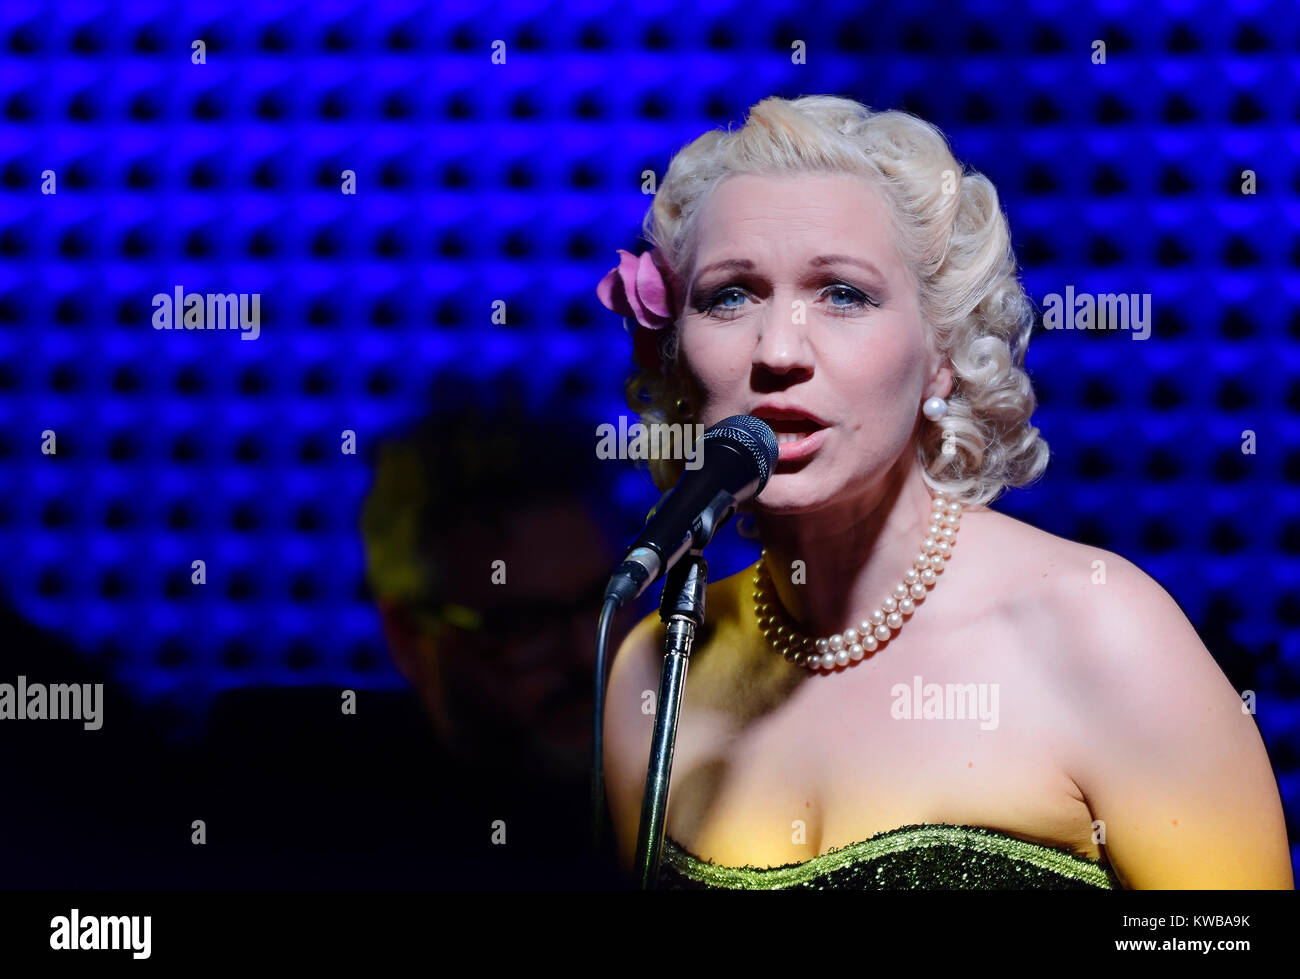 Gunhild High Resolution Stock Photography and Images - Alamy